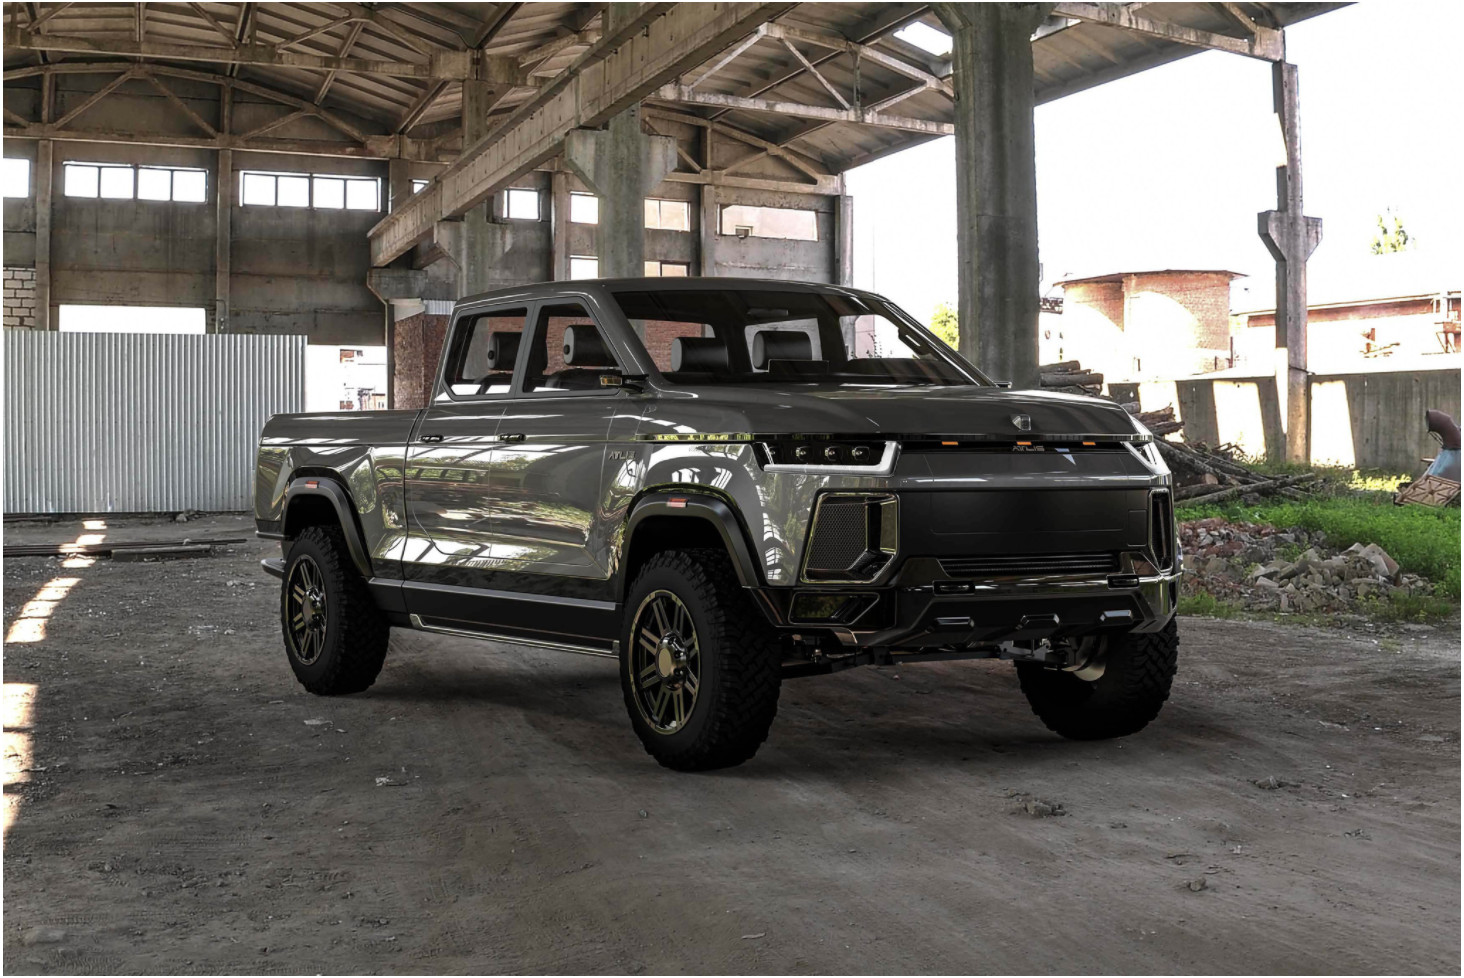 Atlis Xt 500 Mile Electric Truck To Challenge Detroit 3 S Pickup Dominance